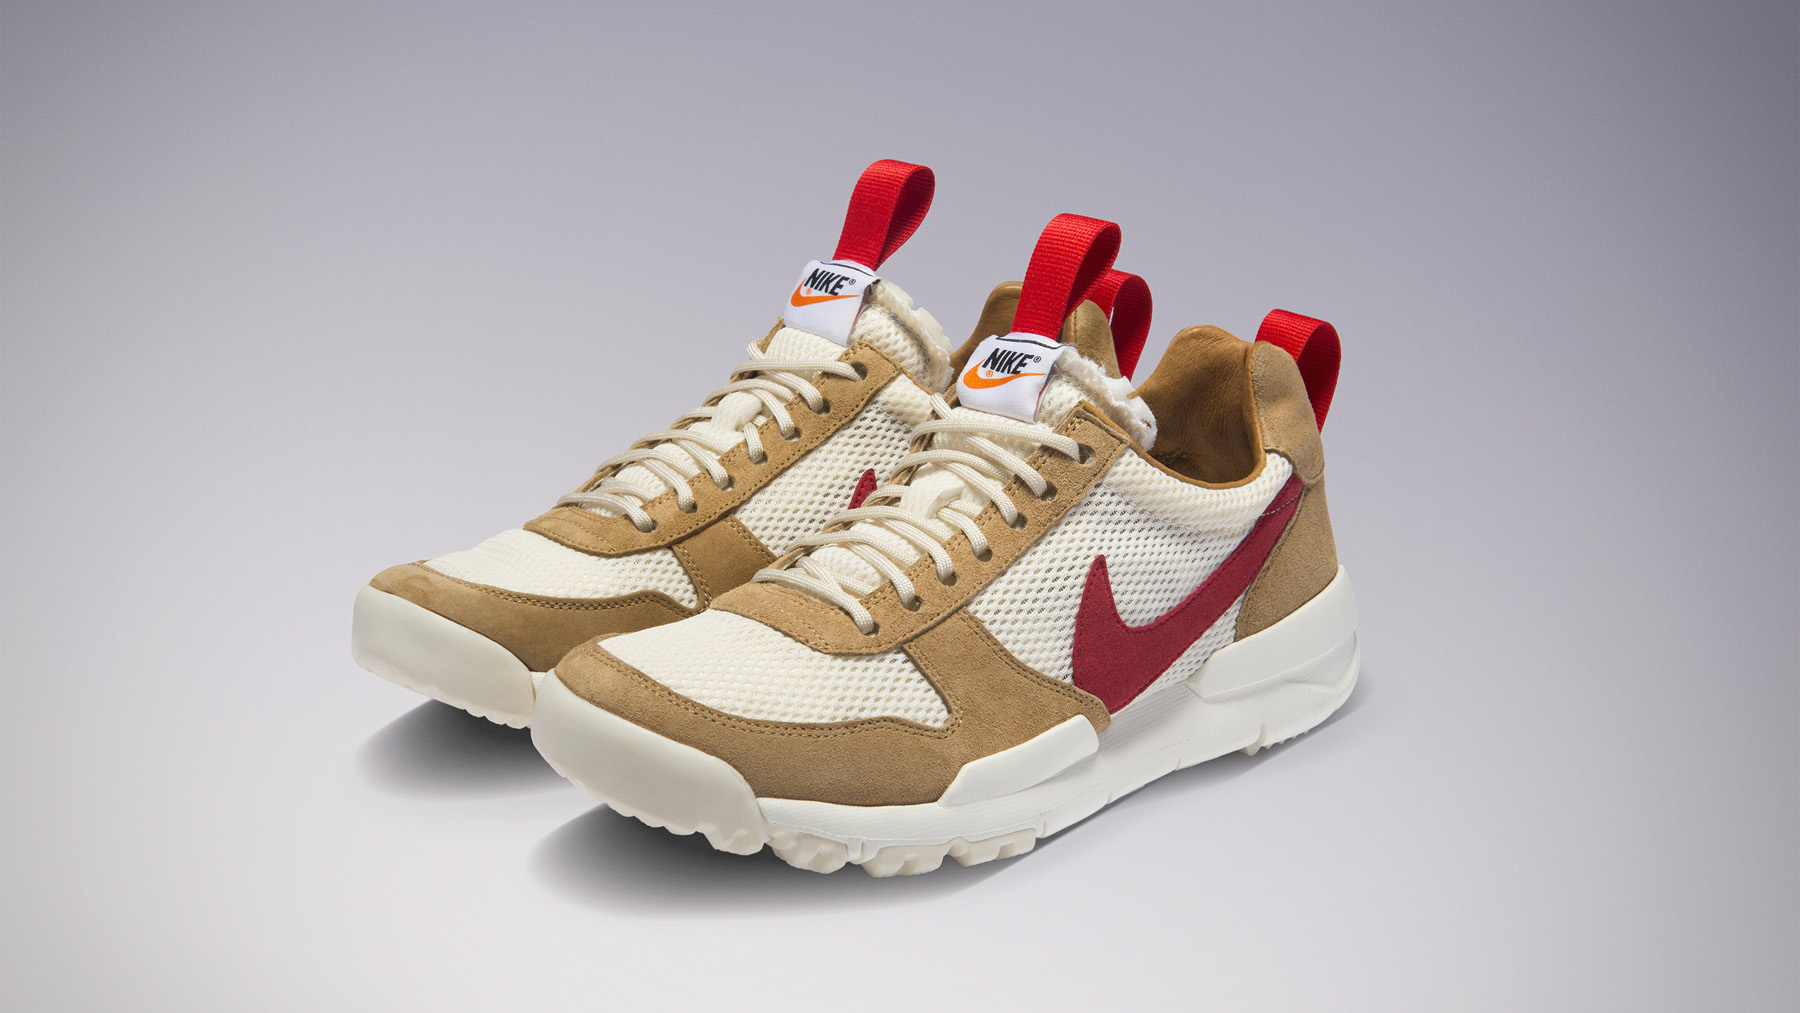 tom-sachs-nikecraft-mars-yard-2